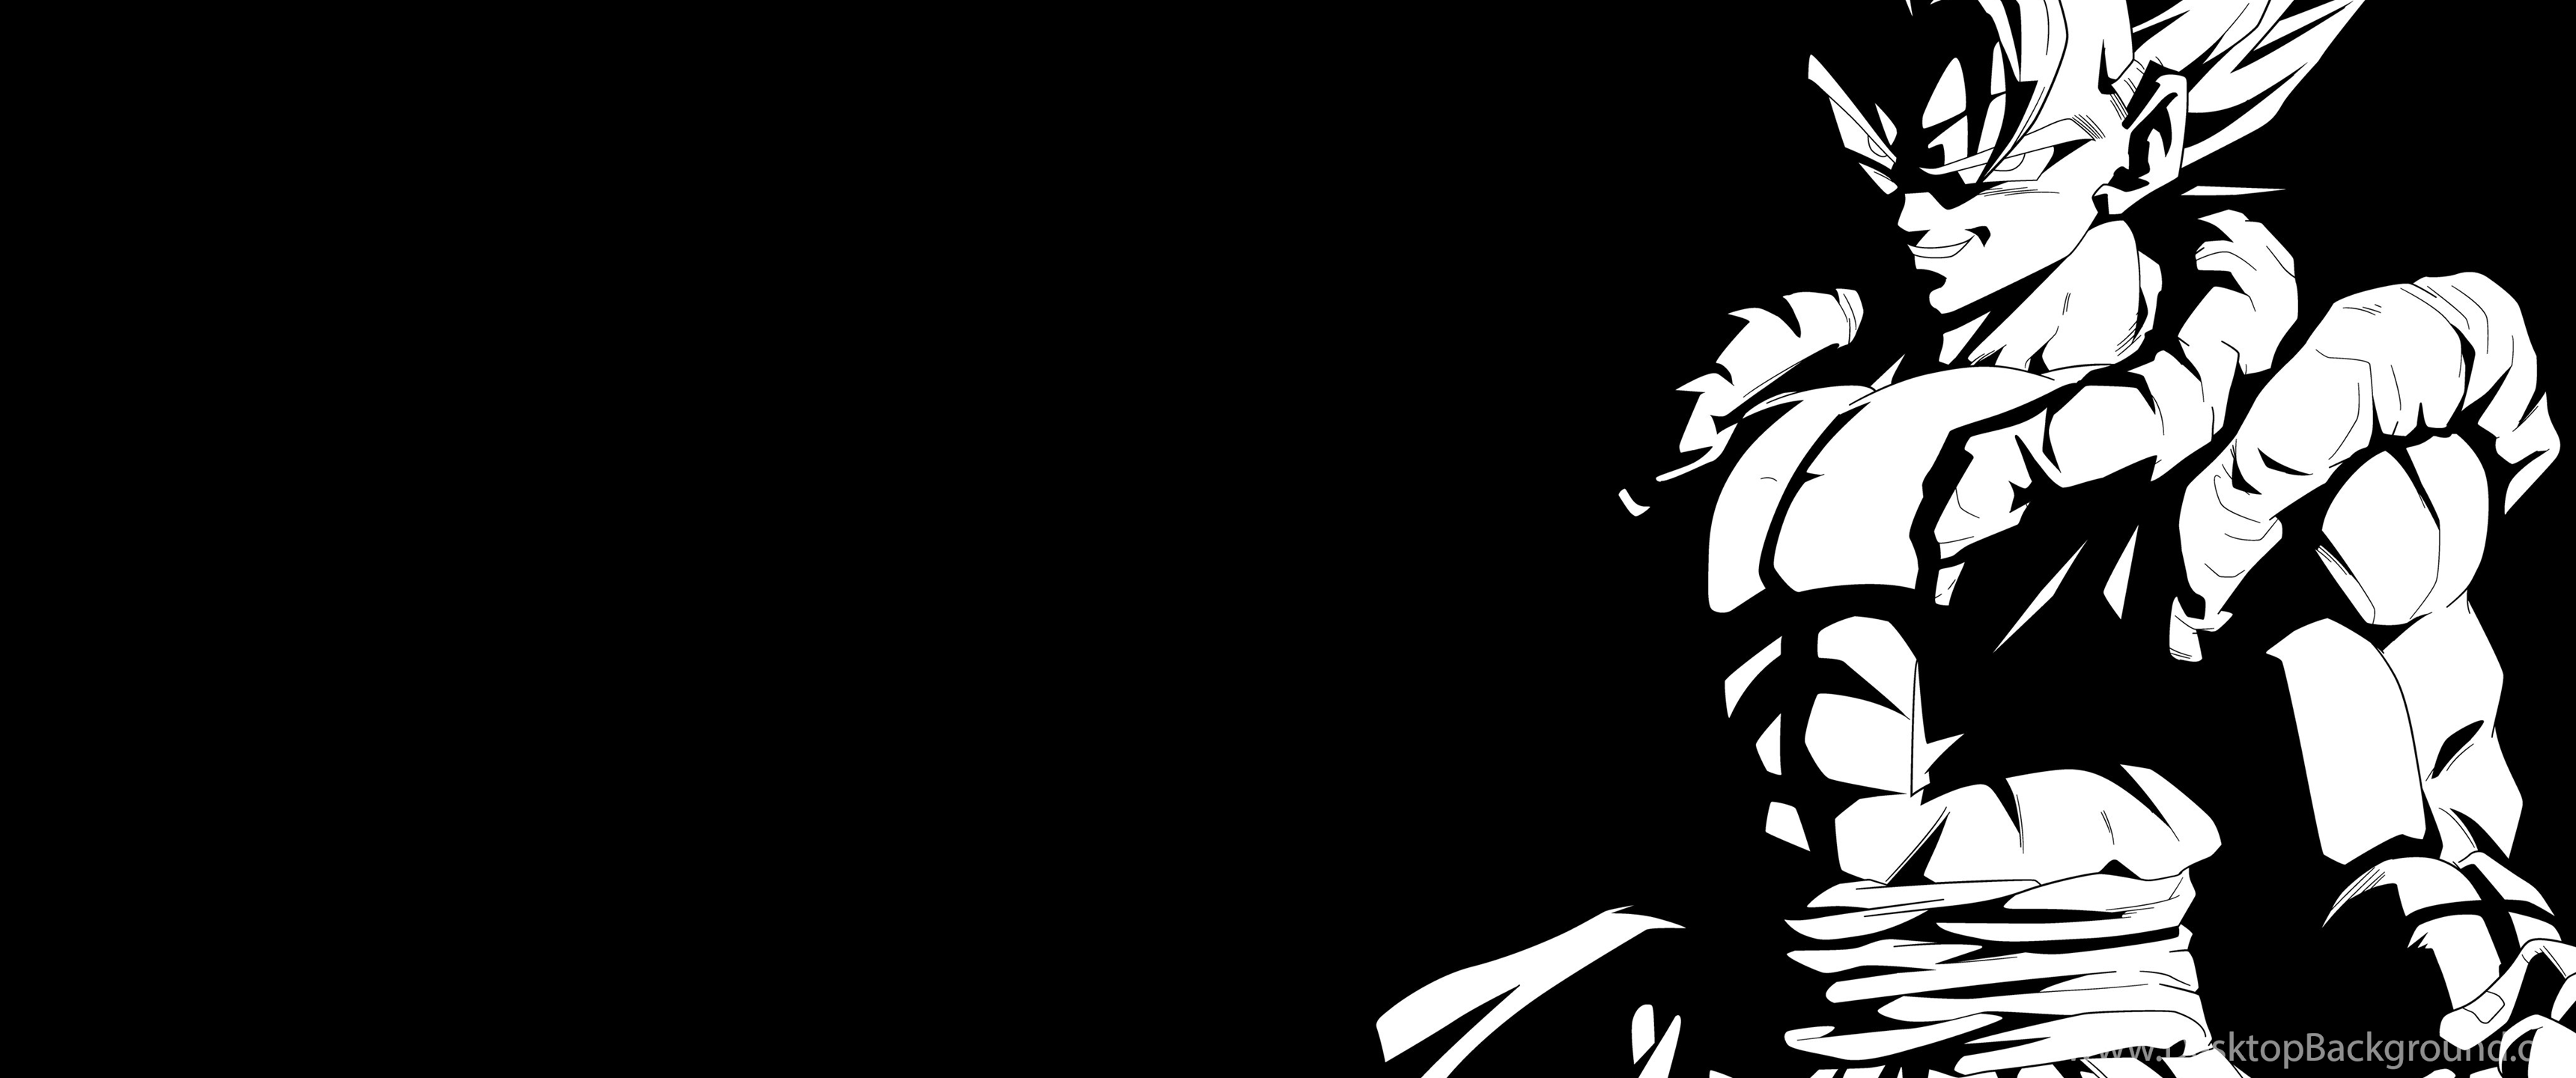 3440x1440 Super Gogeta Black And White 4K Wallpapers By RayzorBlade189 On ...